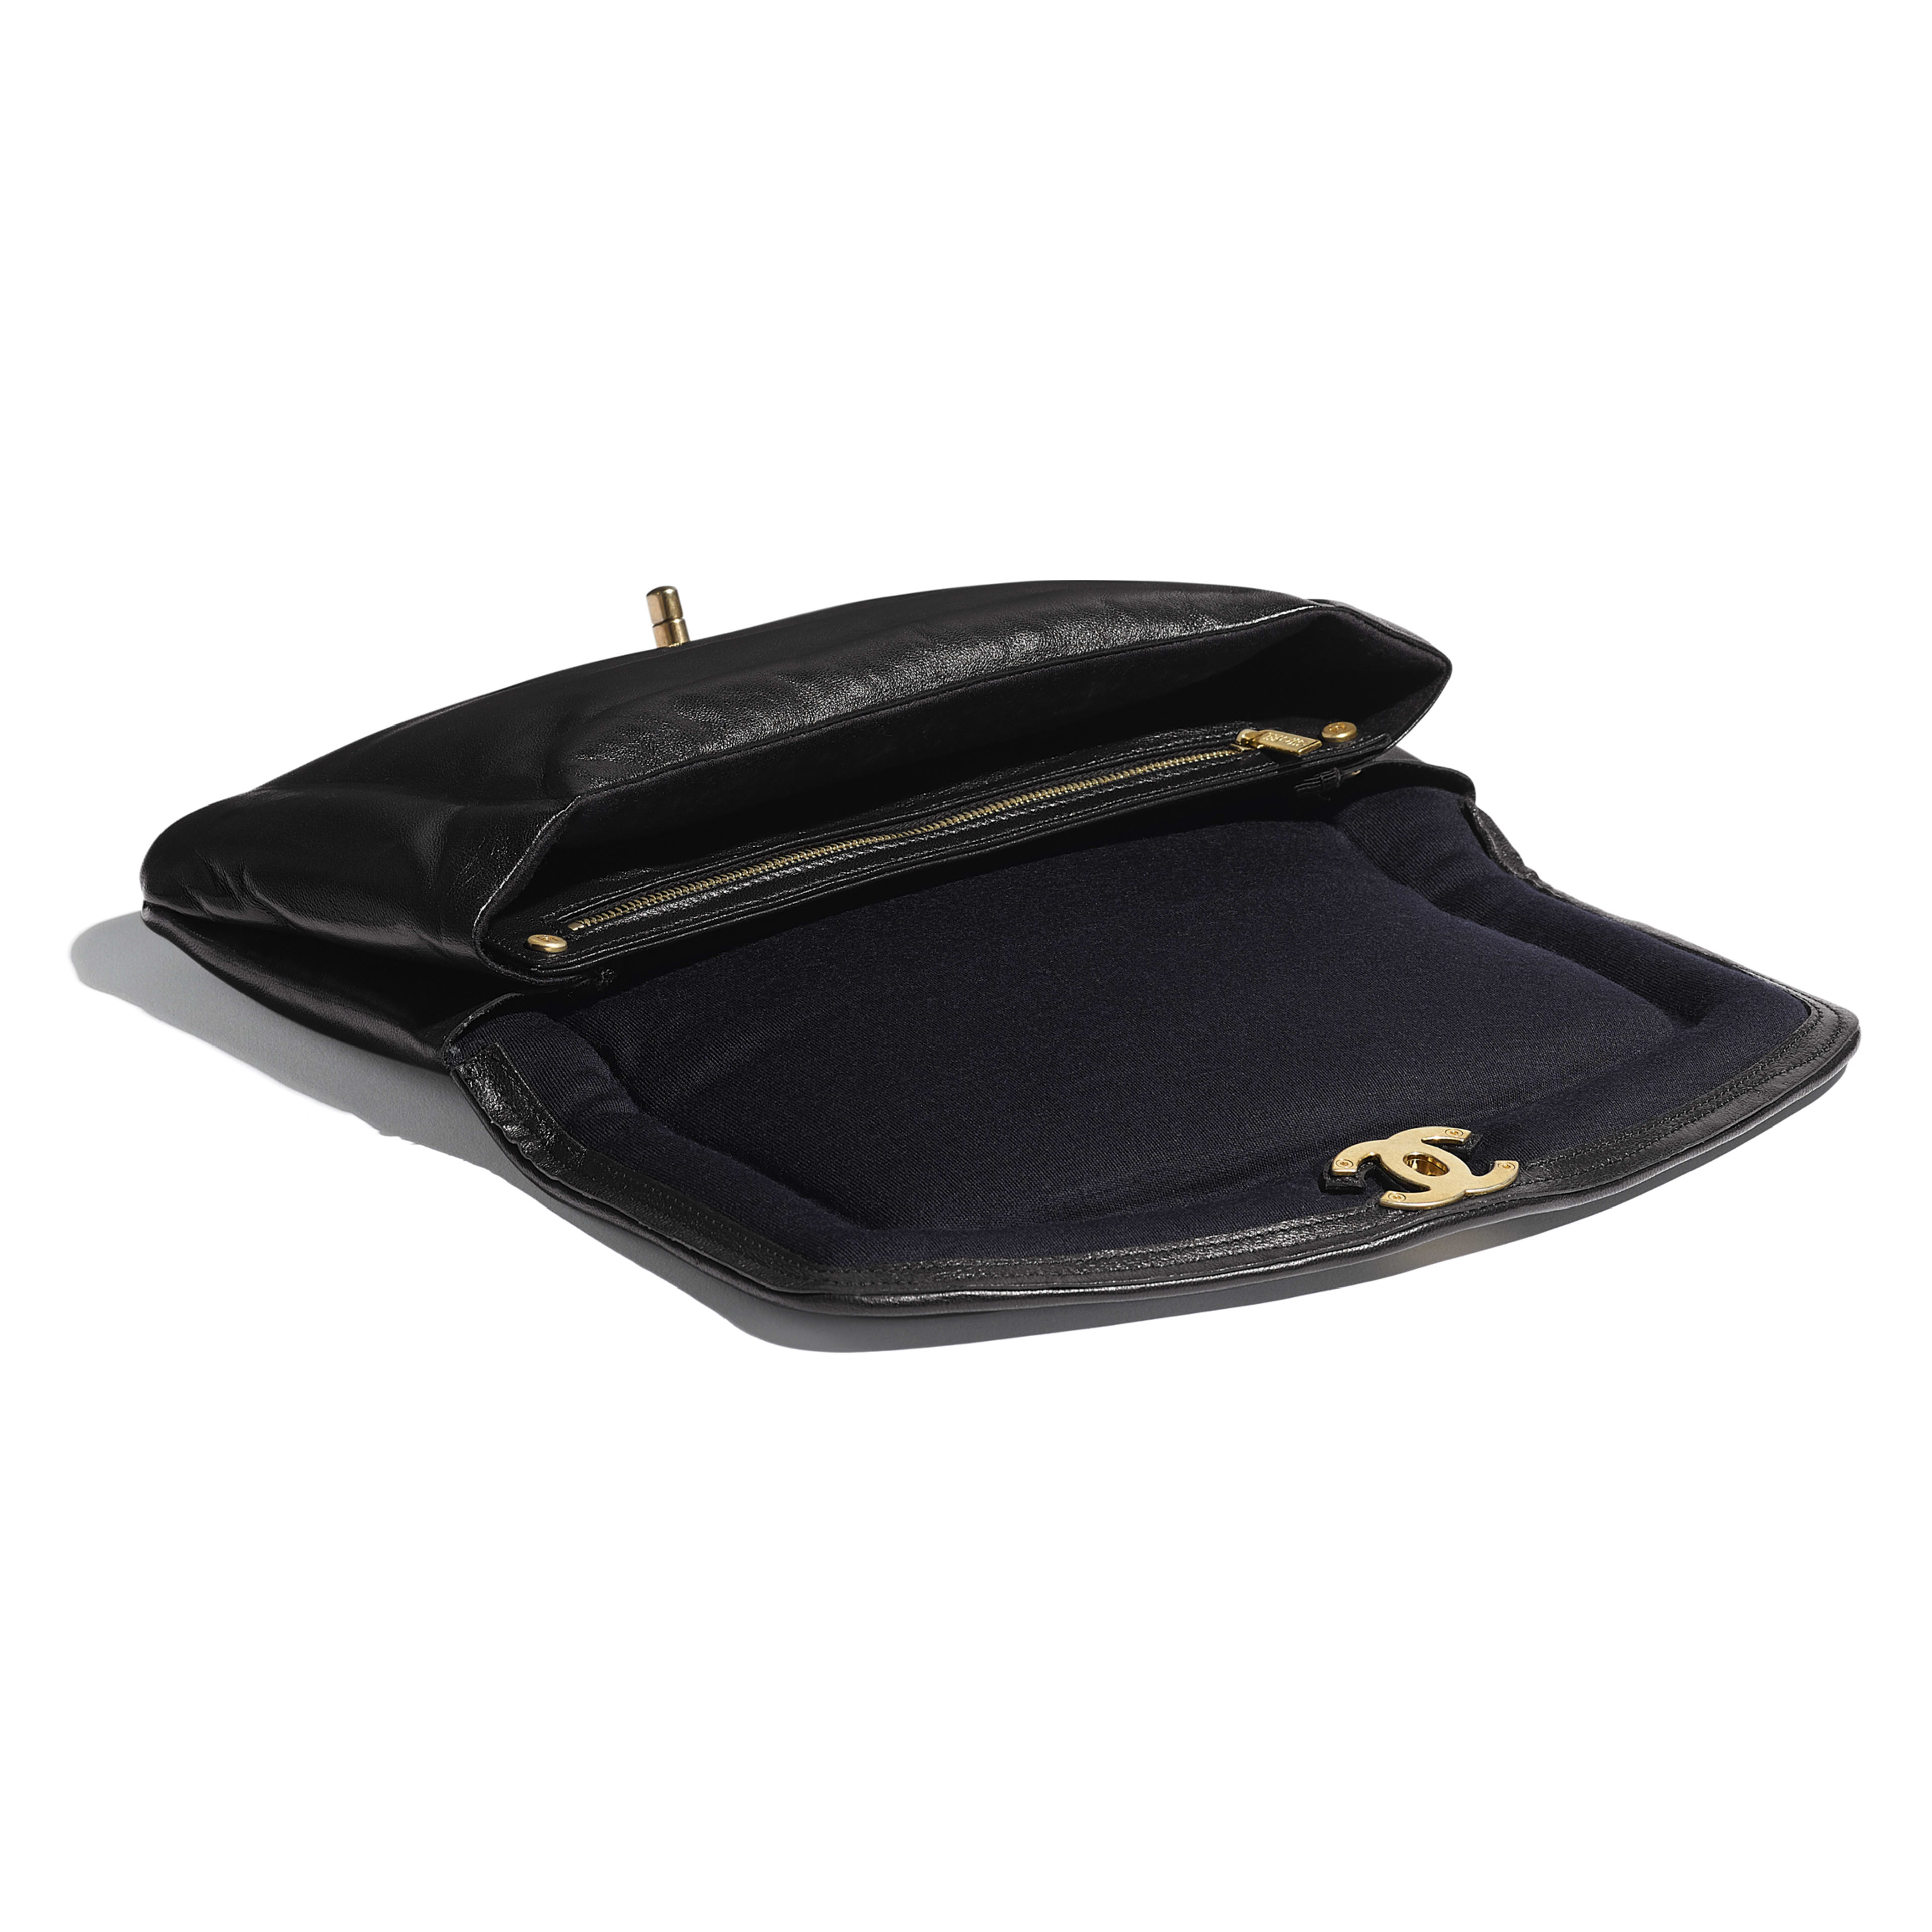 Clutch - Black - Lambskin & Gold-Tone Metal - Other view - see full sized version